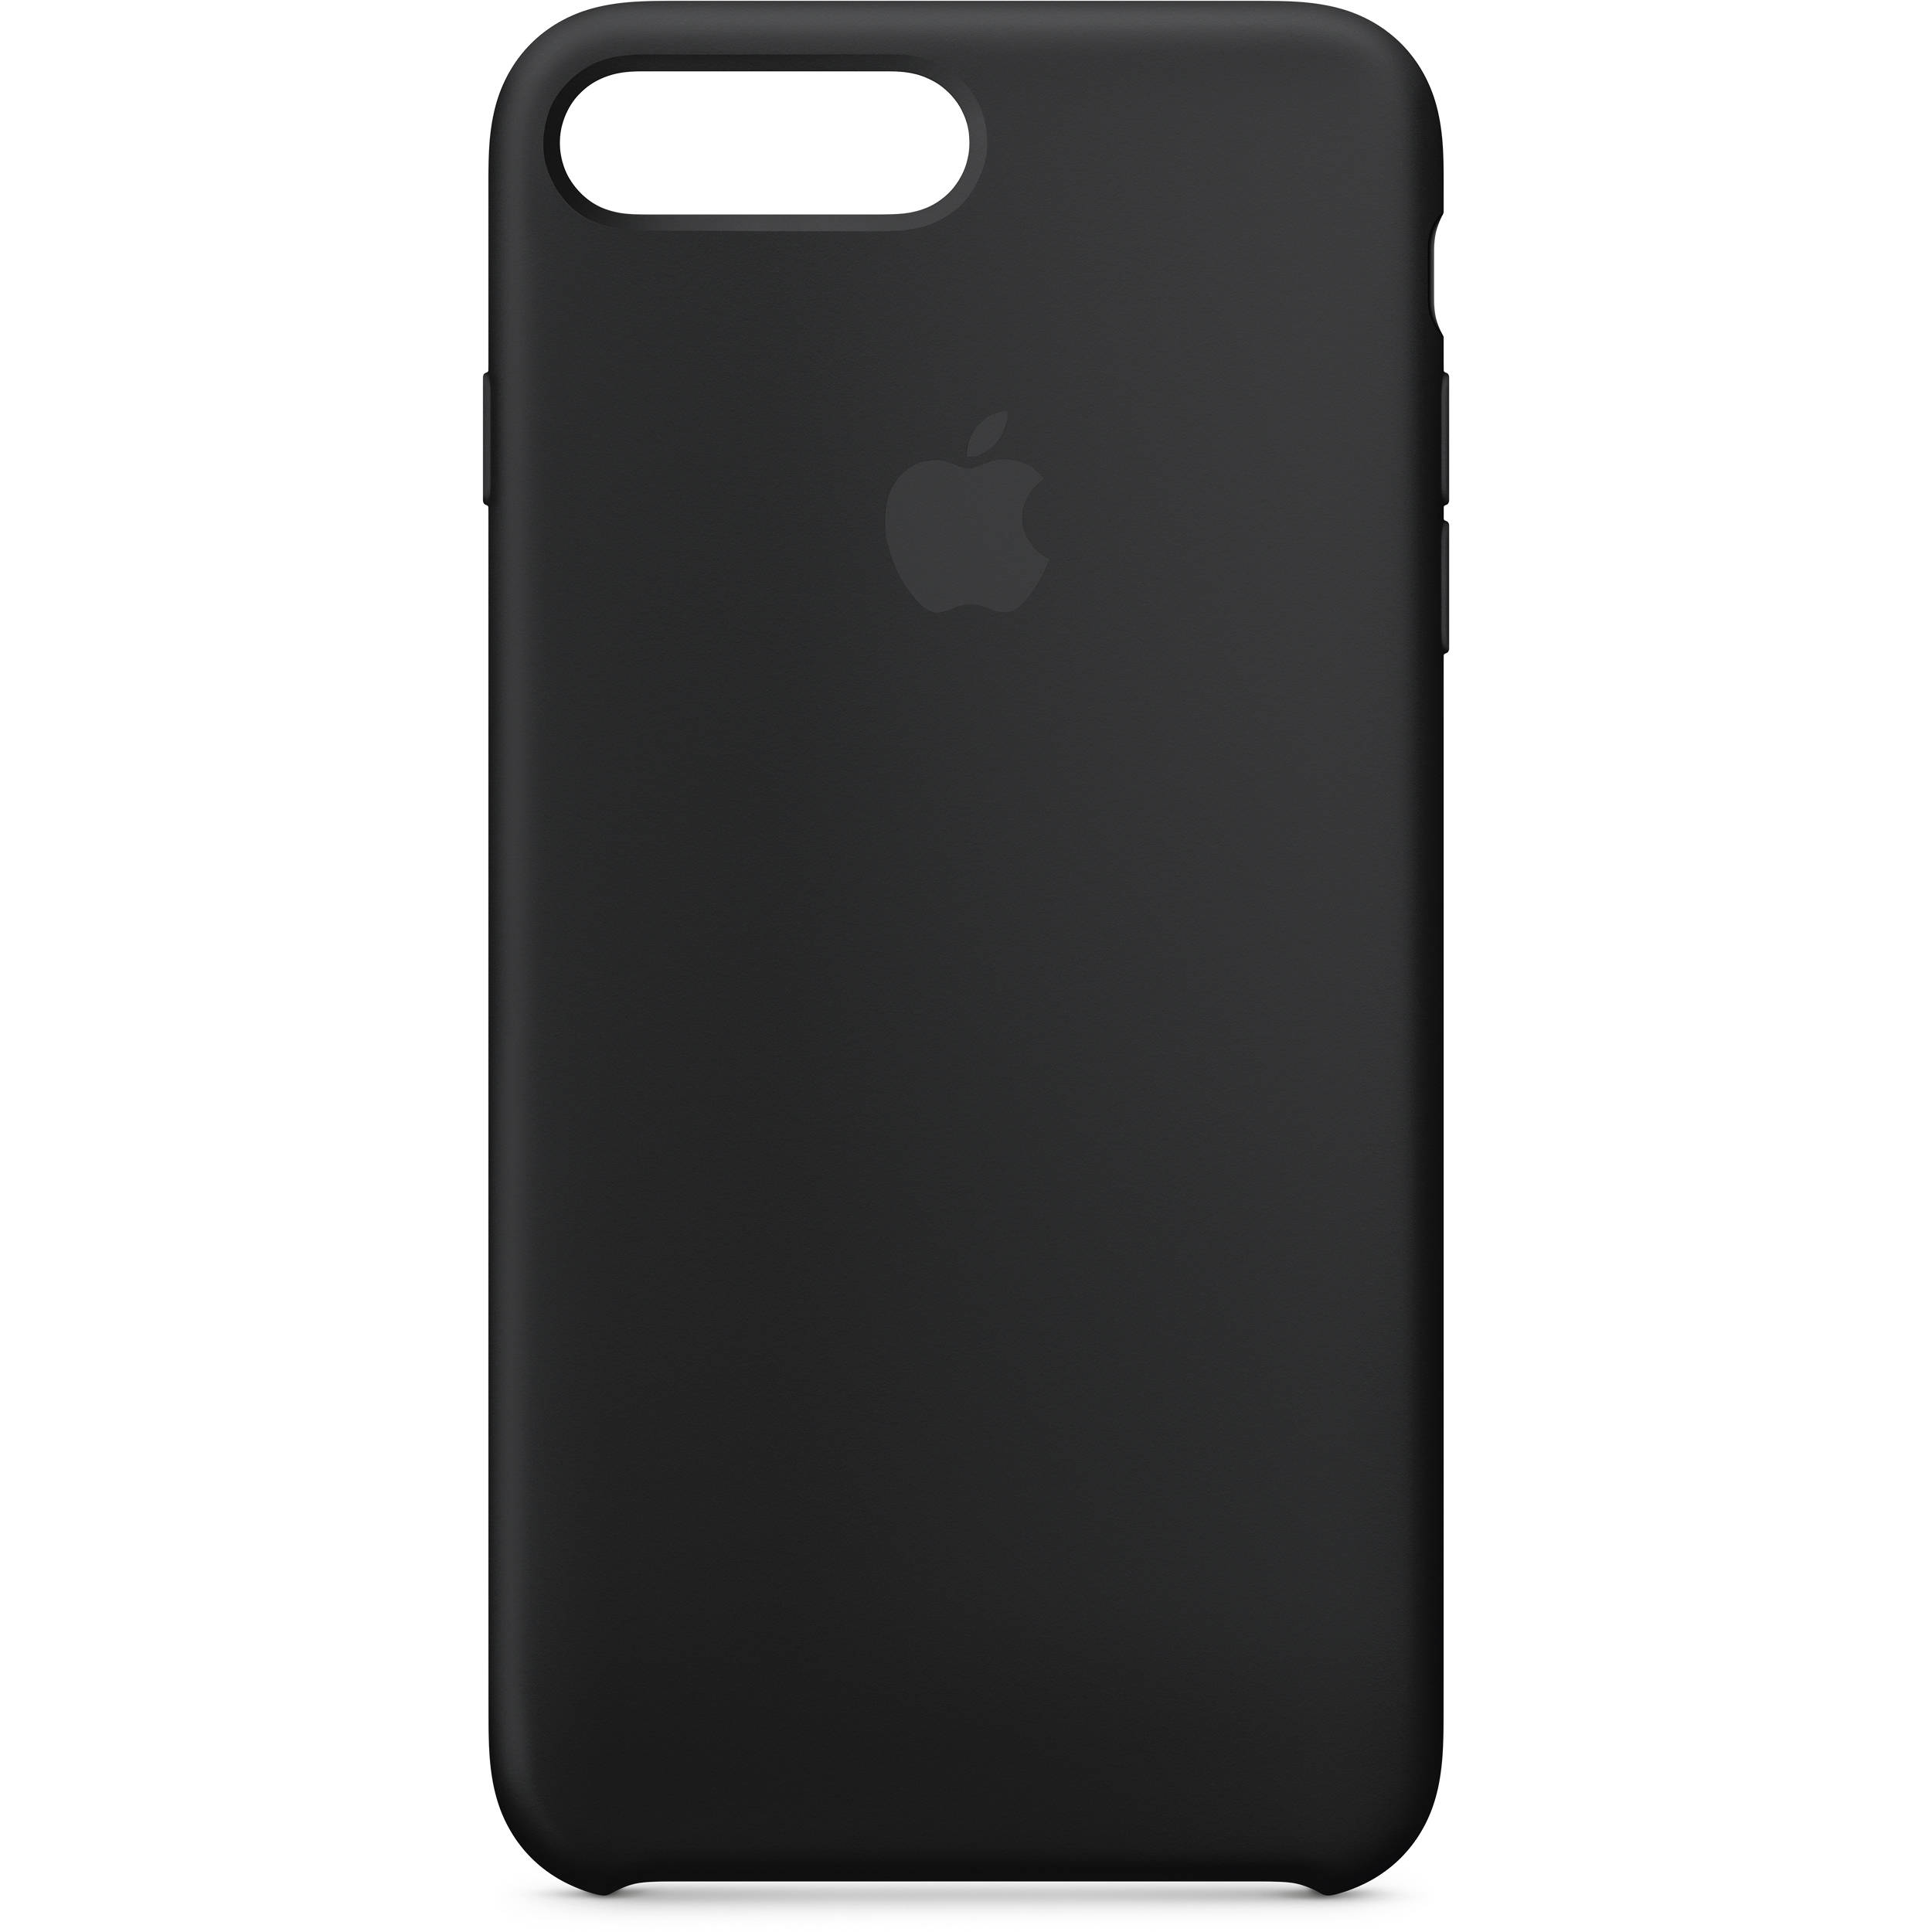 975854810d Apple iPhone 7 Plus/8 Plus Silicone Case (Black) MQGW2ZM/A B&H